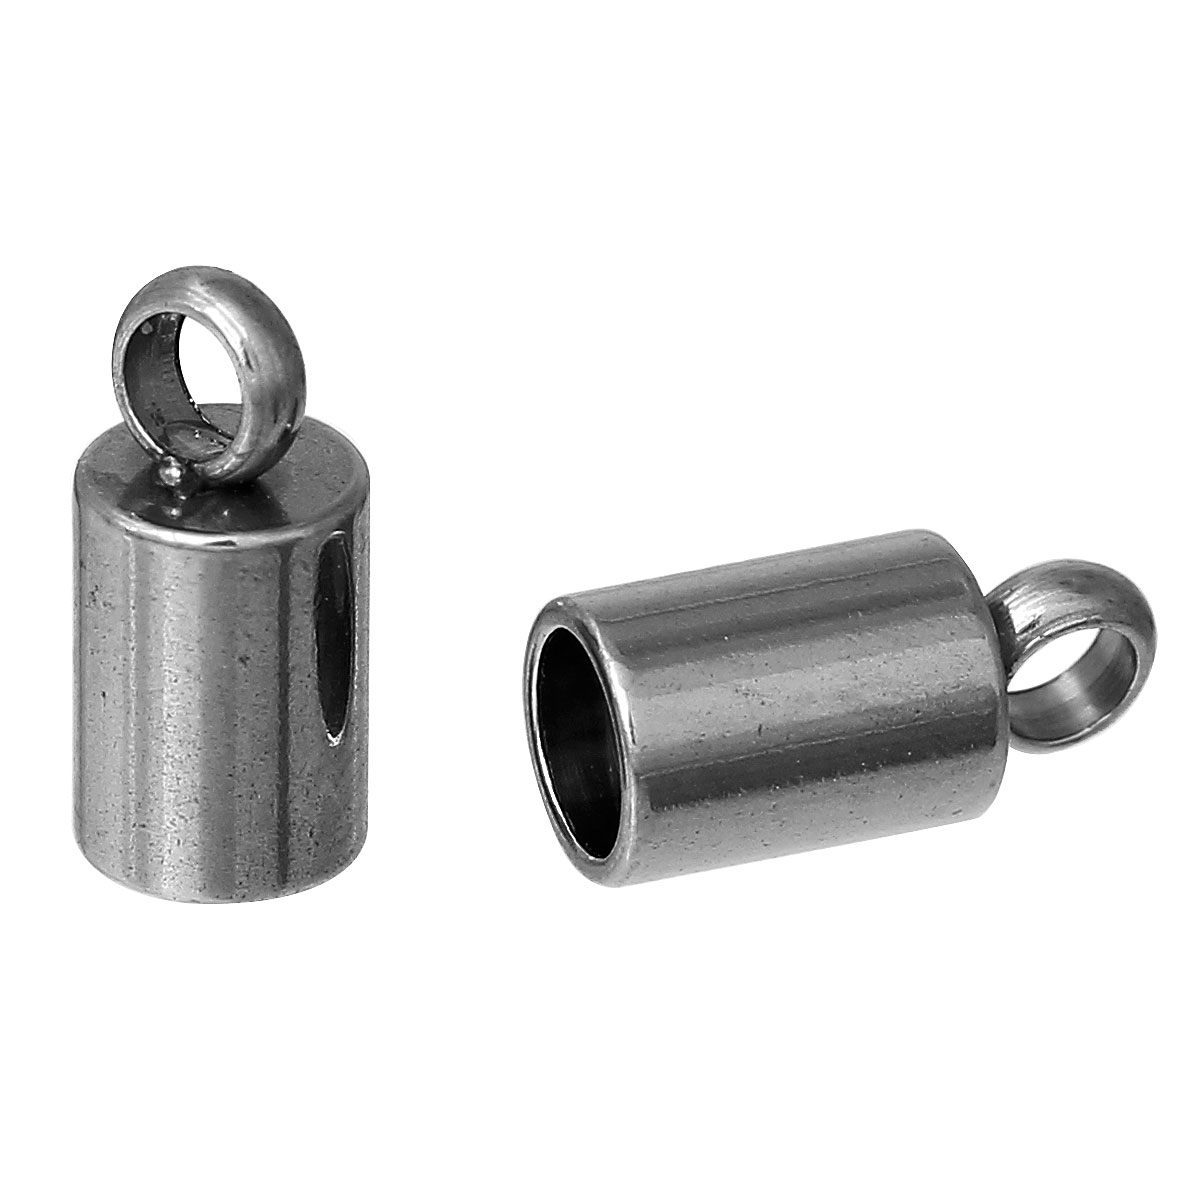 DoreenBeads Stainless Steel Necklace Cord End Tips Cylinder dull silver color (Fits 3mm Cord)8.5mm(3/8